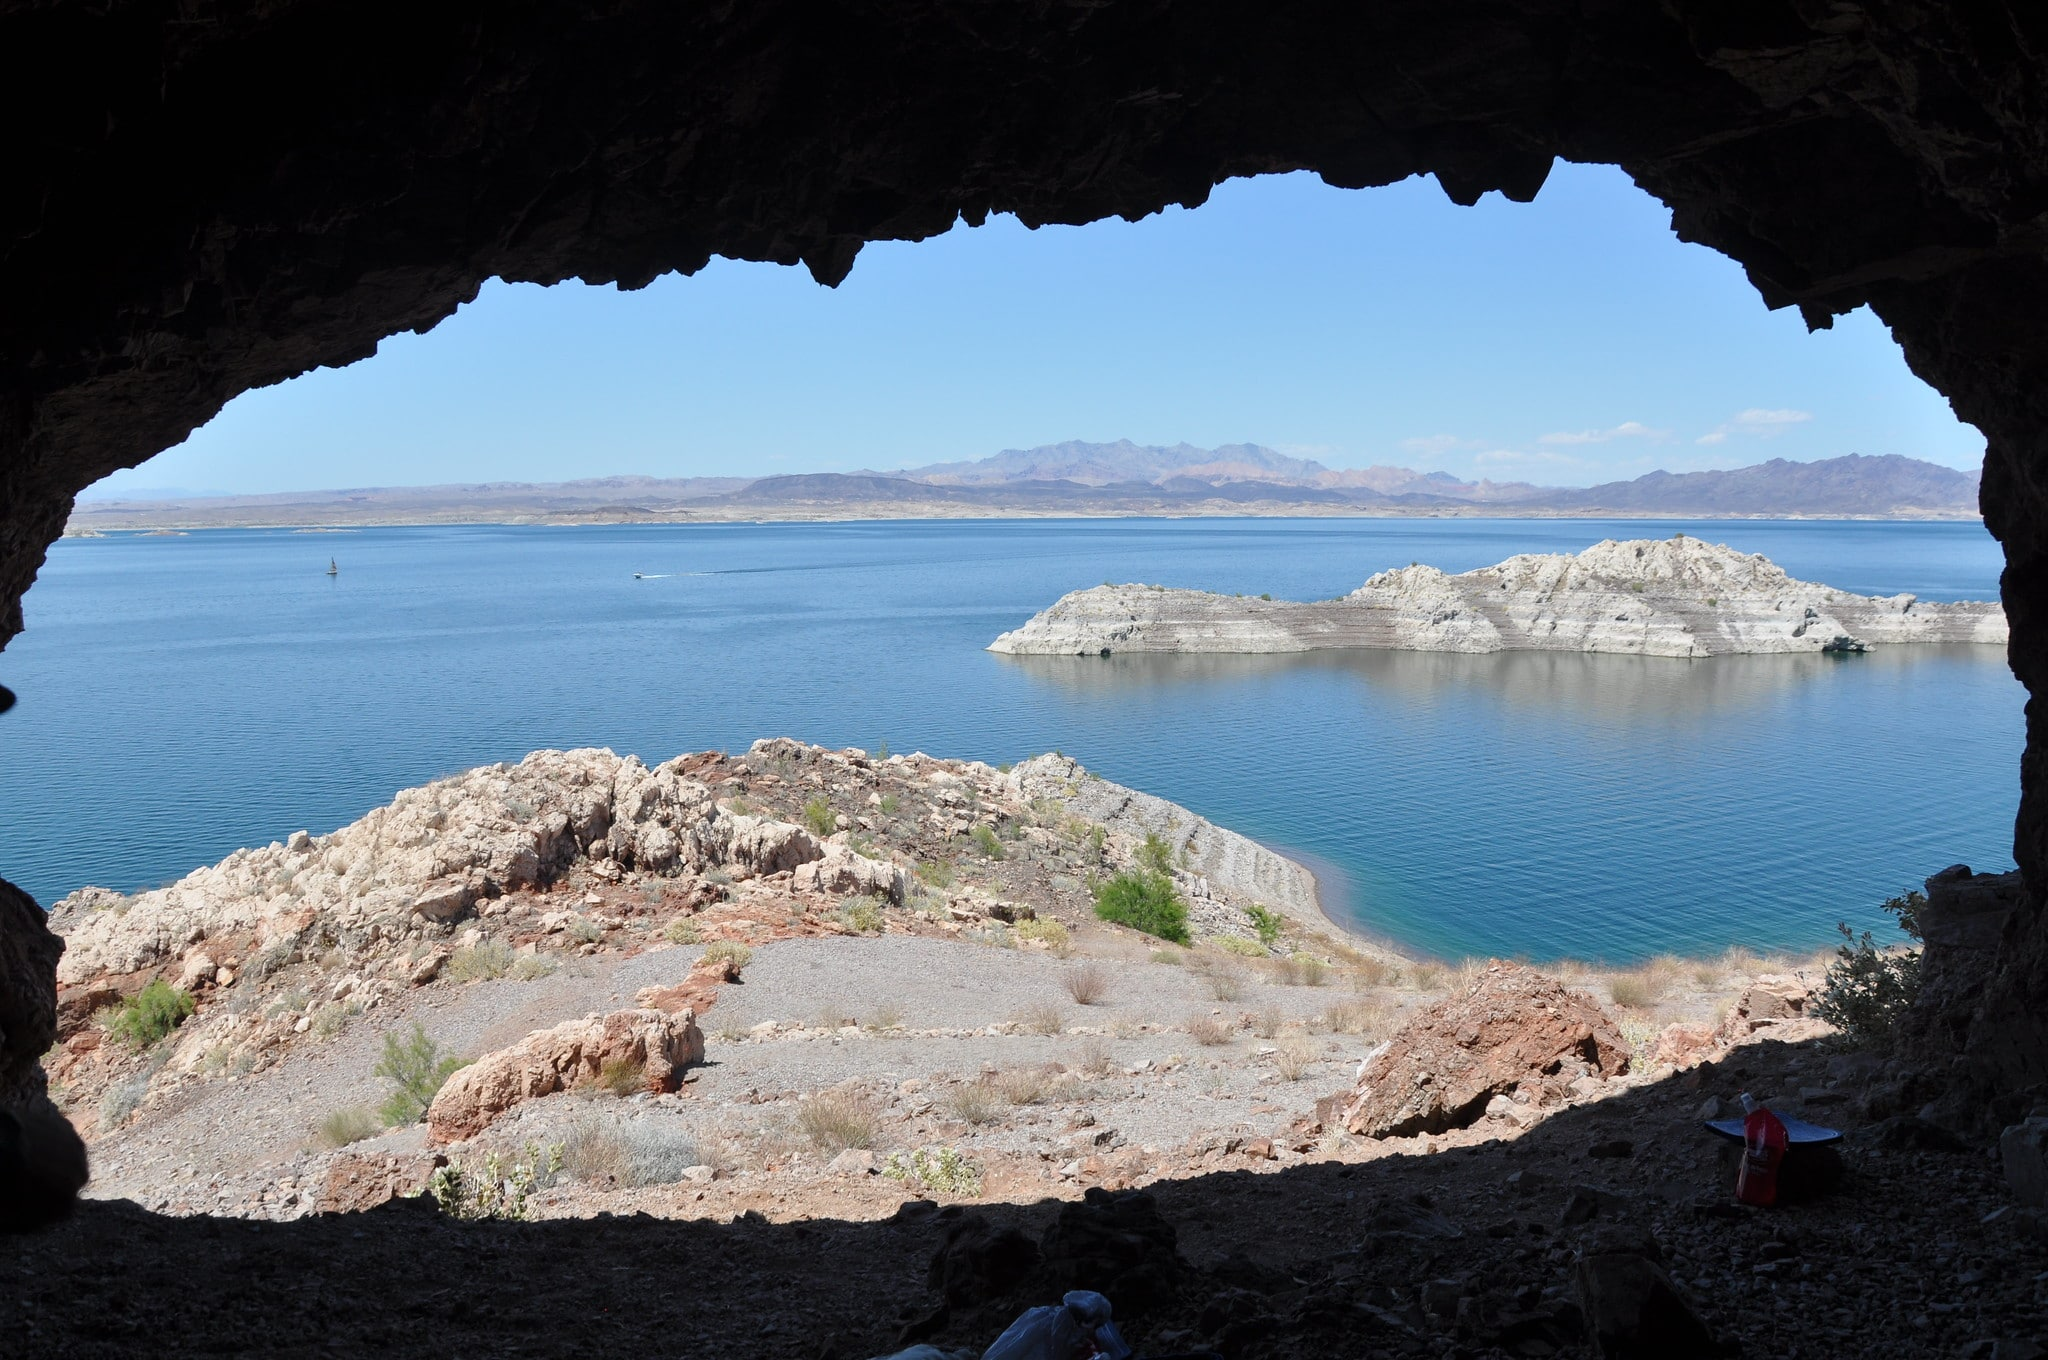 Image of Lake Mead in Nevada, home to Rogers spring